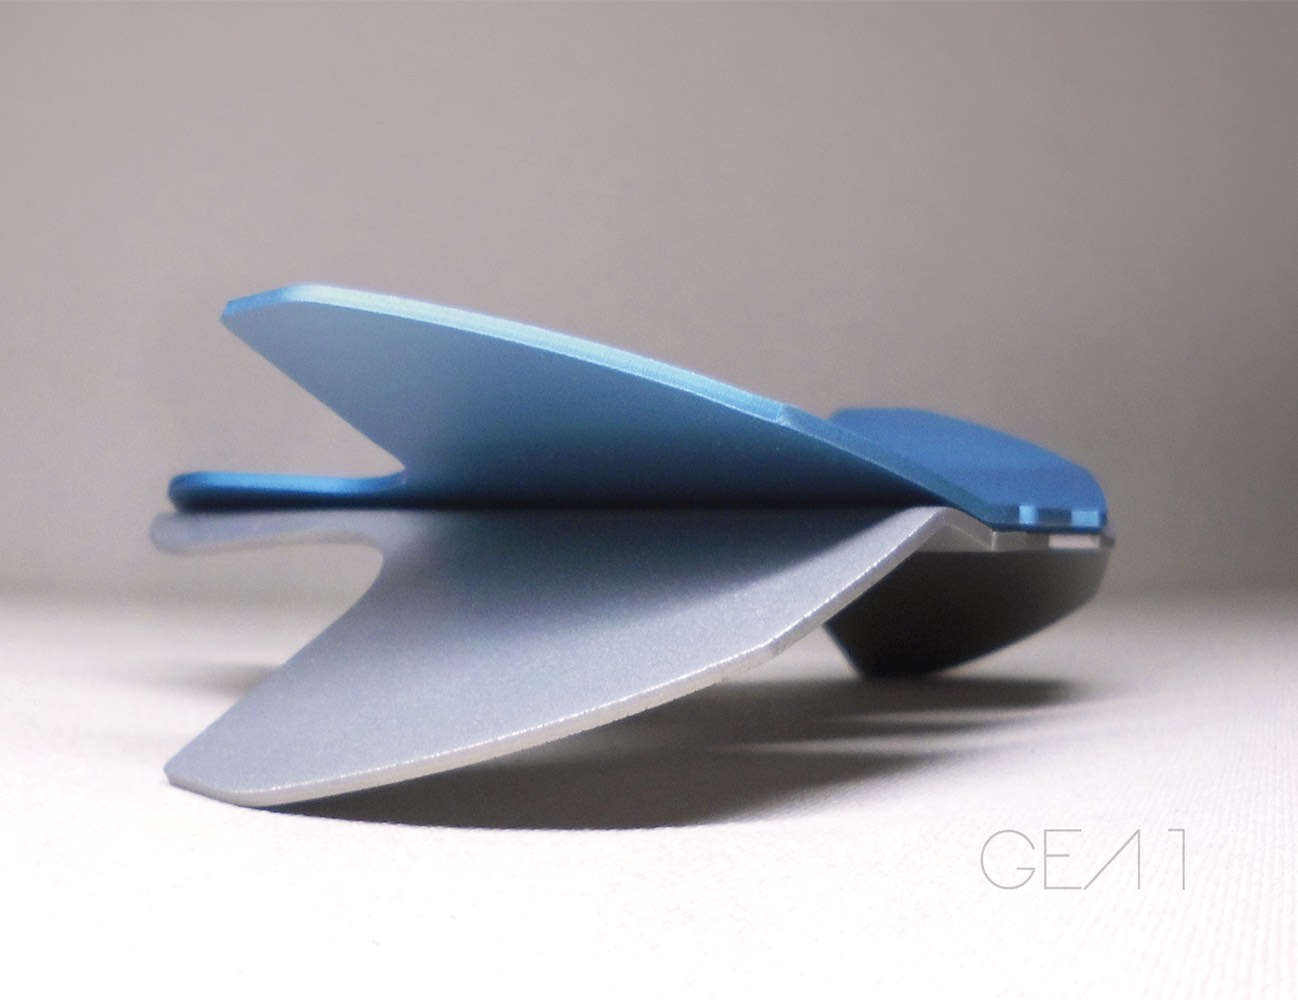 GEA 1 – Ship Minimalist Sculpture Inspired by Nature